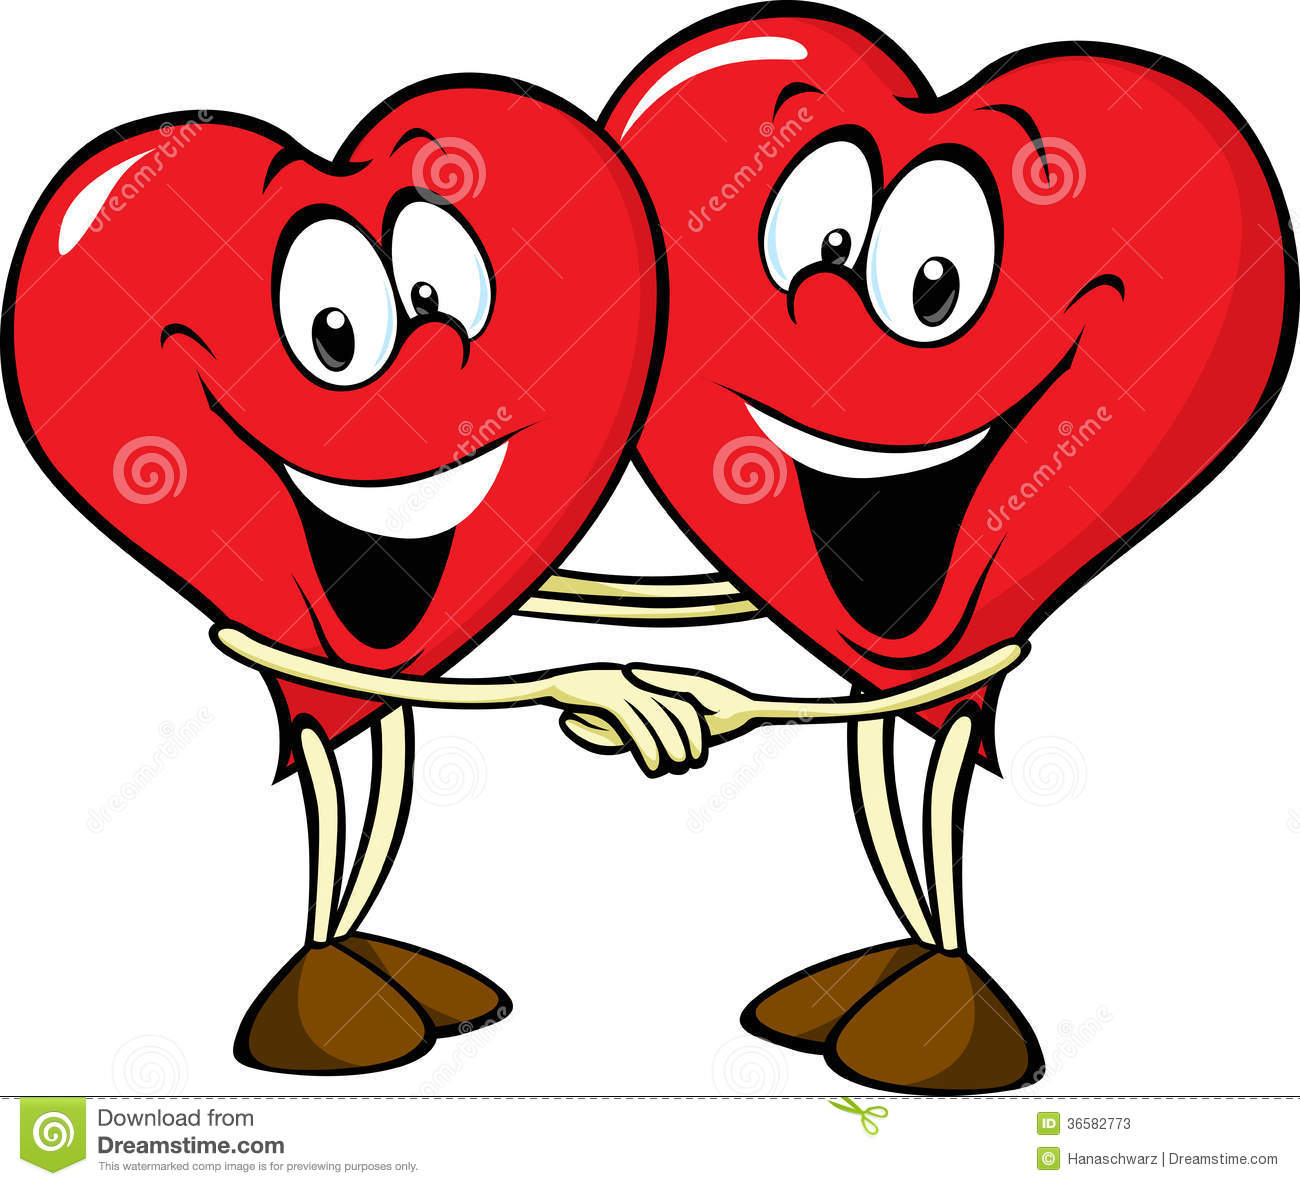 Two Hearts In Love Stock Photos Image: 36582773 - 1300x1186 - jpeg